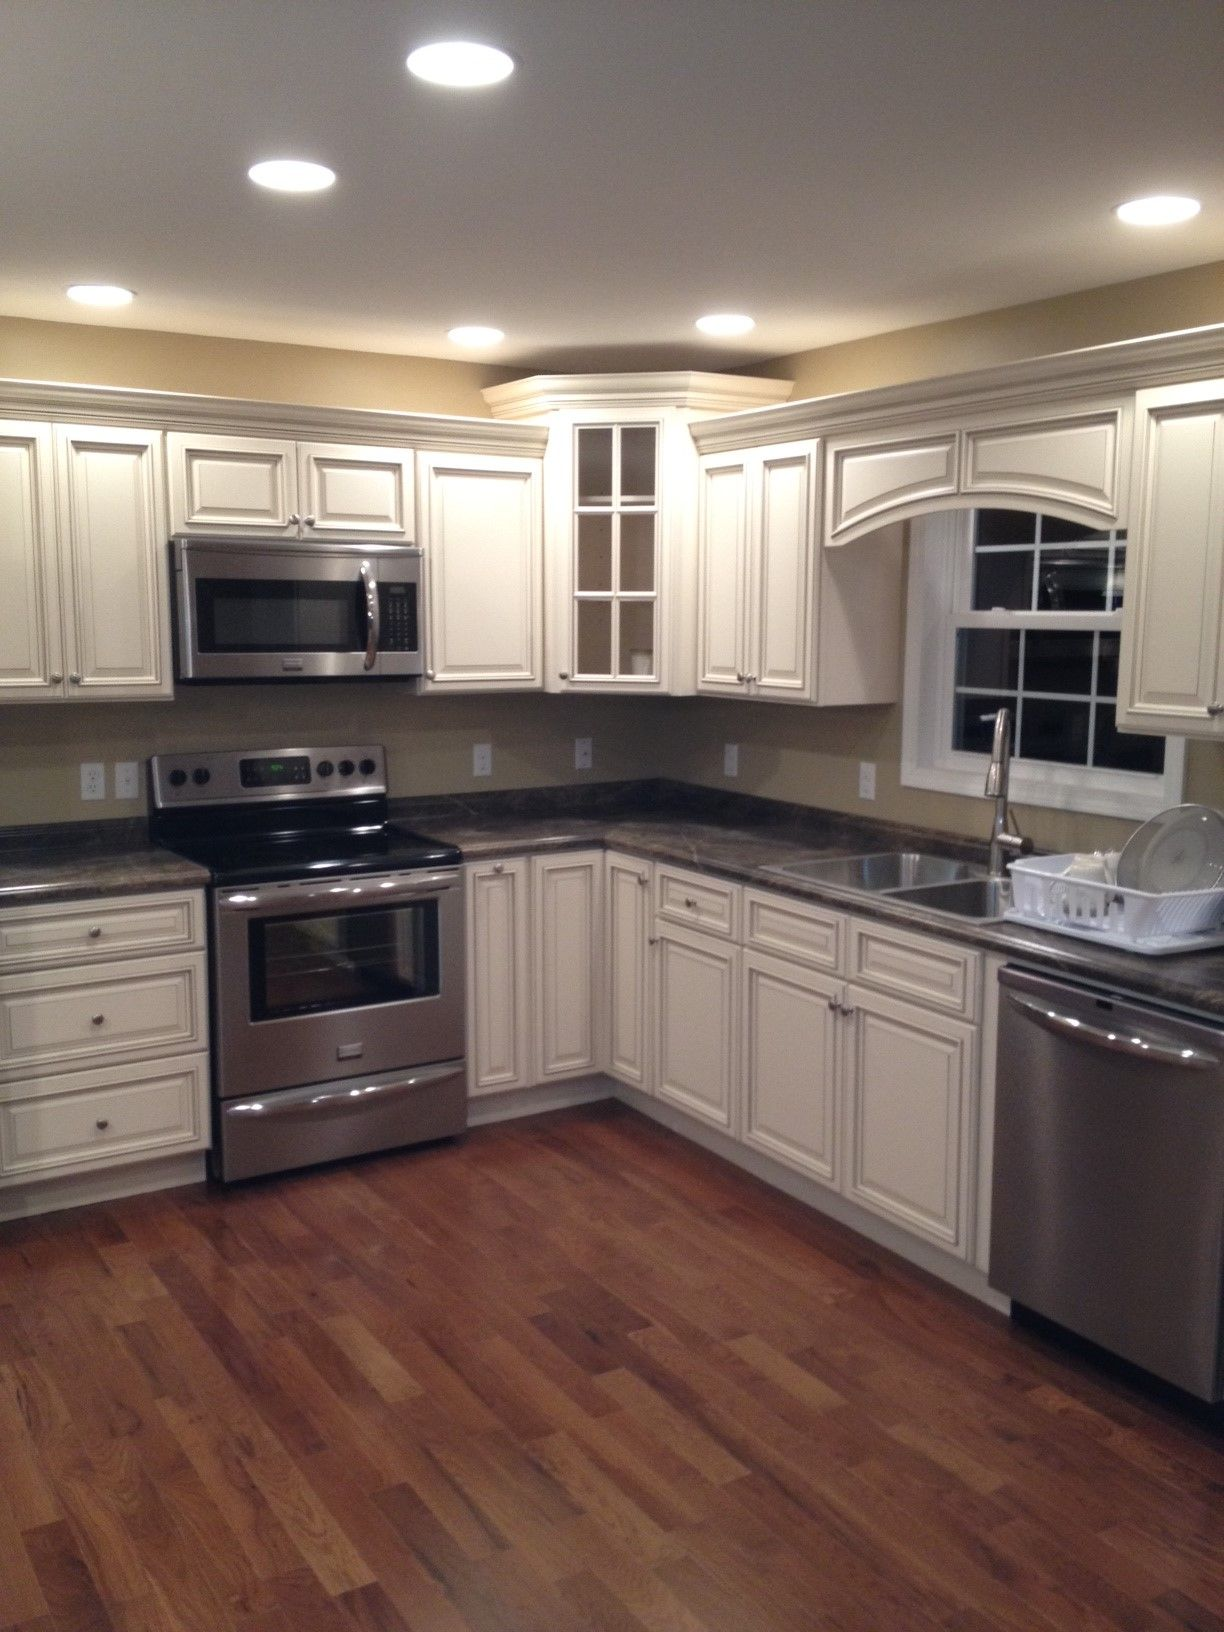 Signature Pearl Cabinets With Slate Sequoia Countertops. Leslie County, Ky